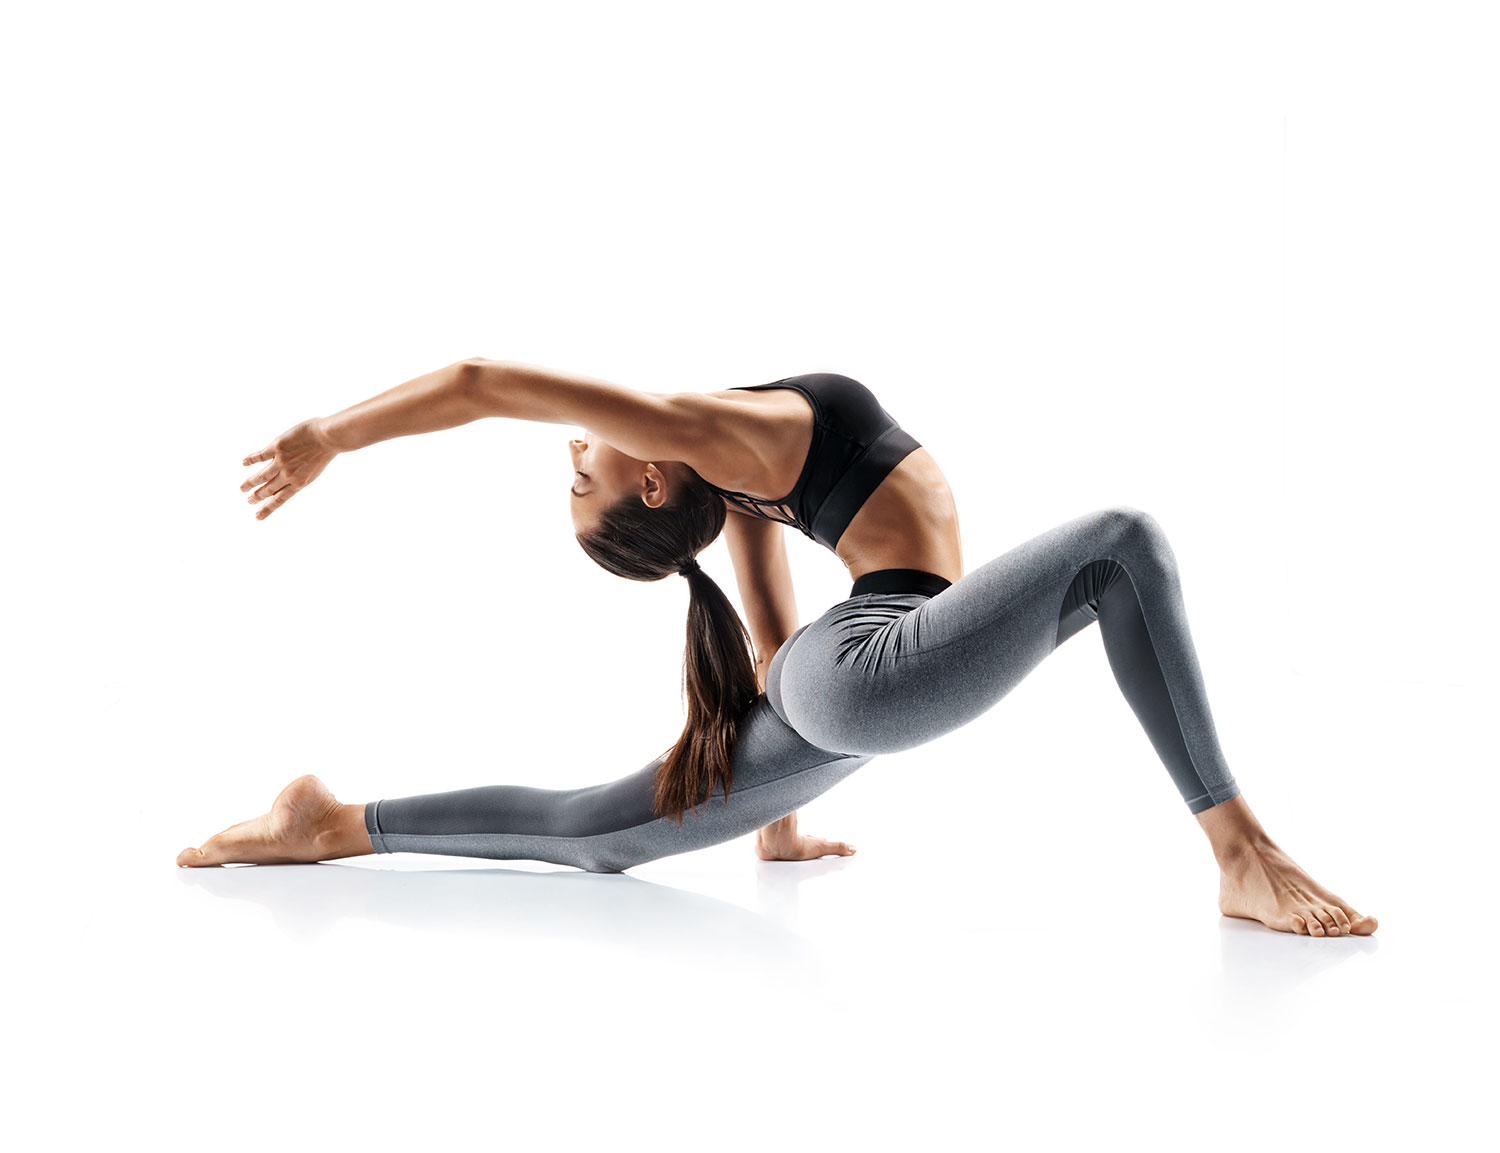 8 Ways to Keep the Back Safe in Yoga